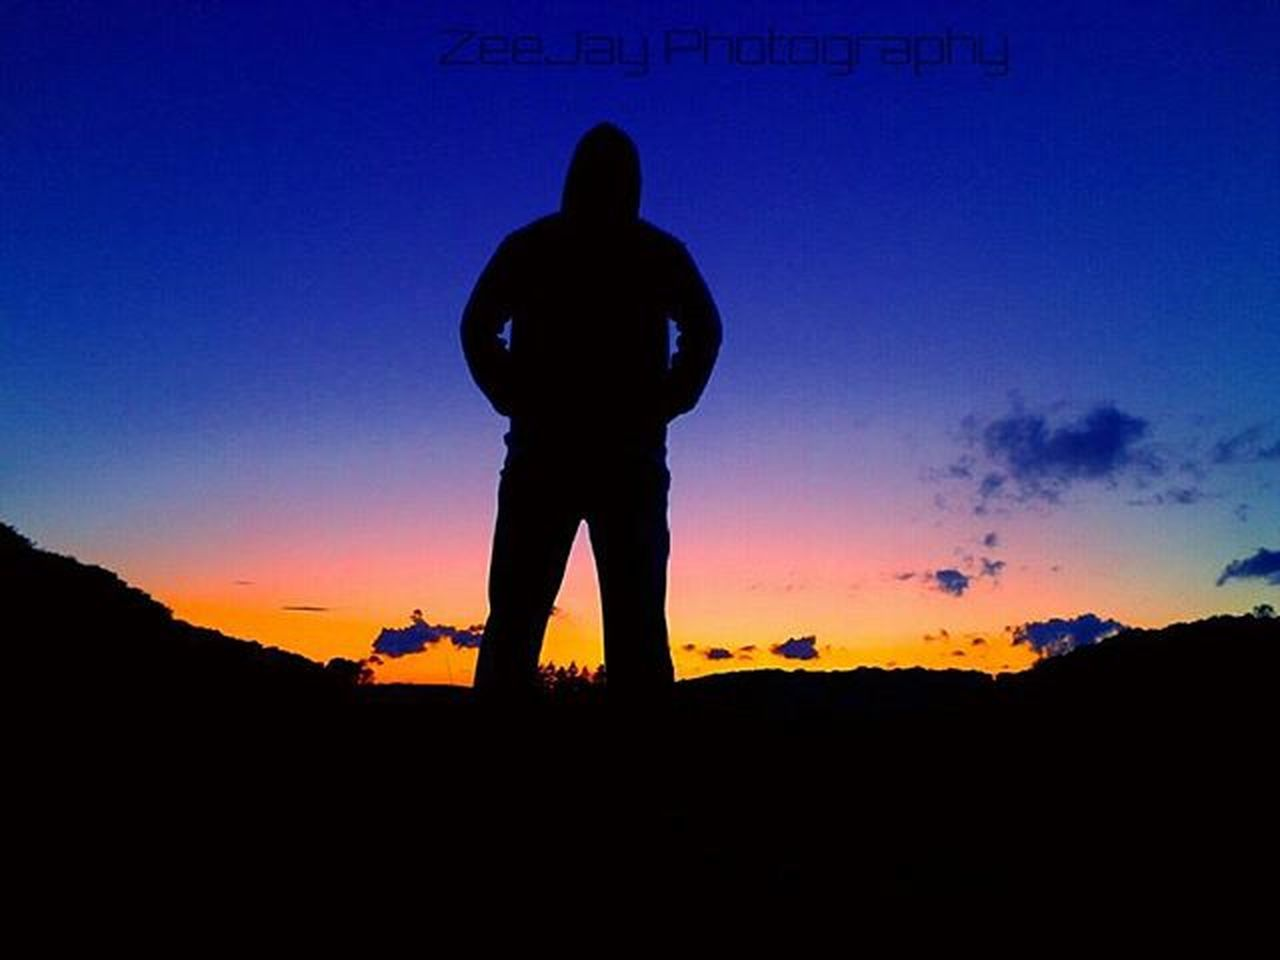 silhouette, sunset, standing, one person, one man only, sky, people, nature, only men, outdoors, beauty in nature, blue, full length, scenics, adults only, adult, men, day